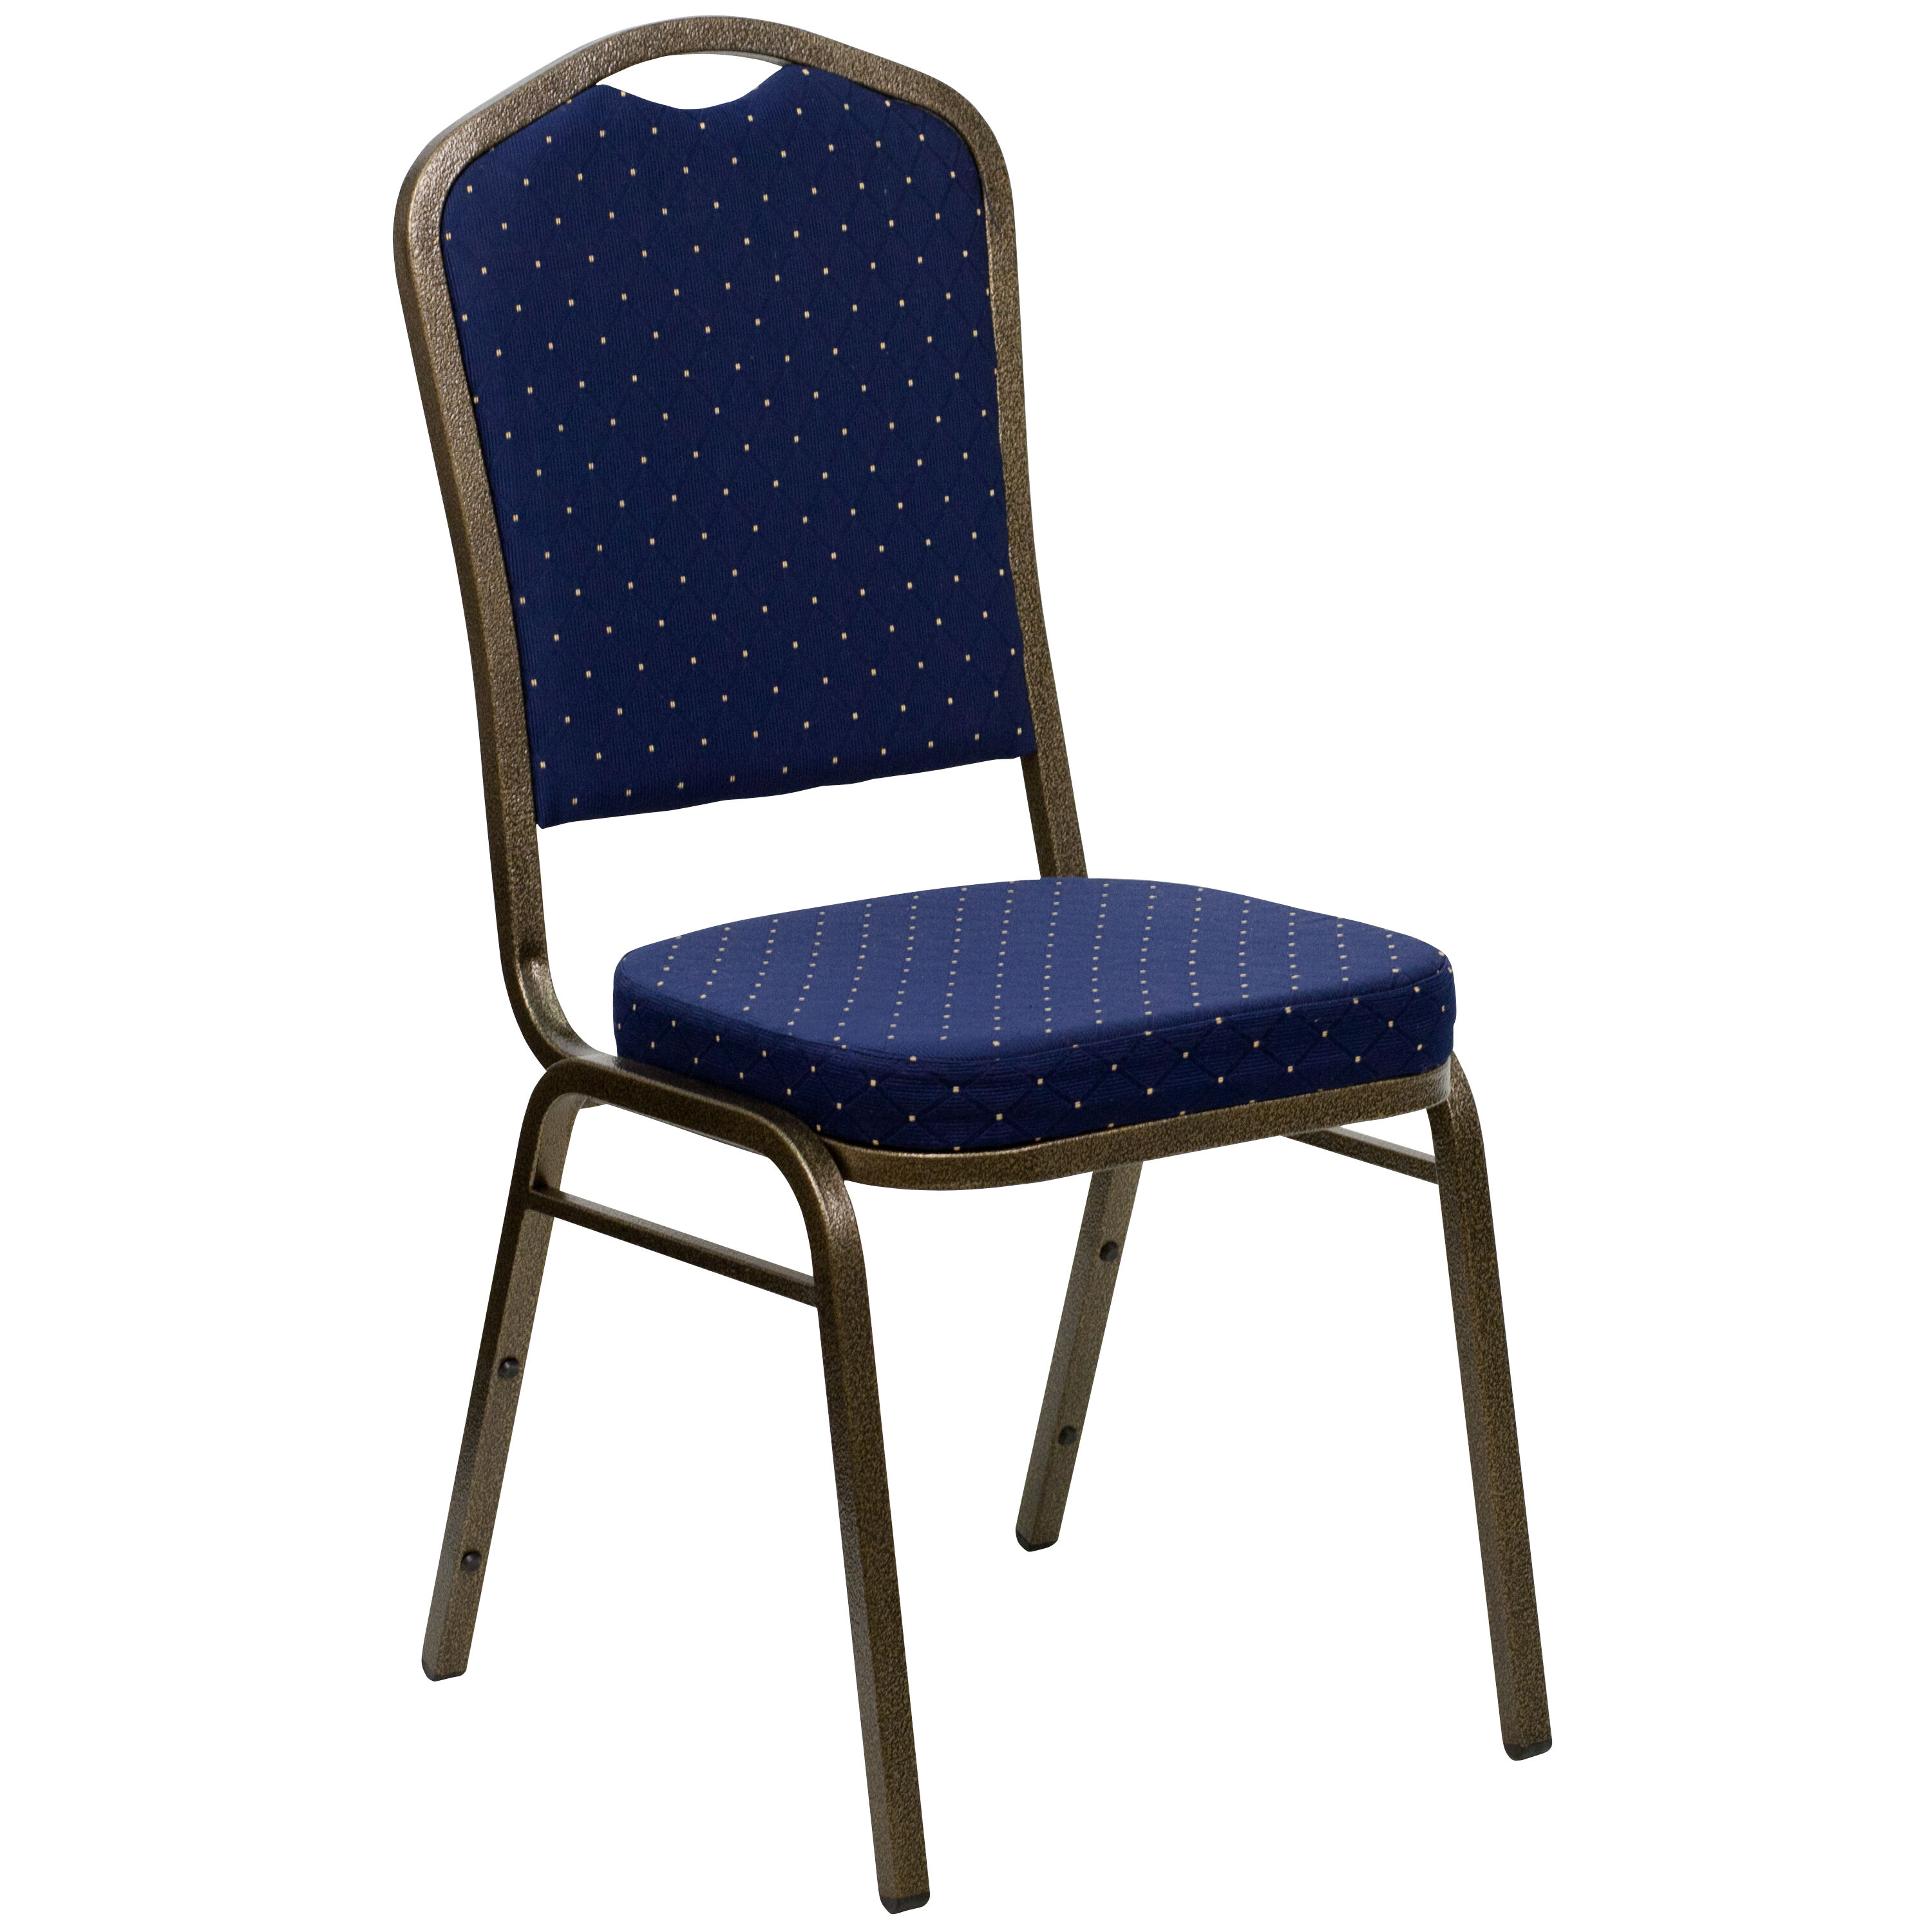 blue dot chairs clearance dining room navy fabric banquet chair fd c01 goldvein s0810 gg